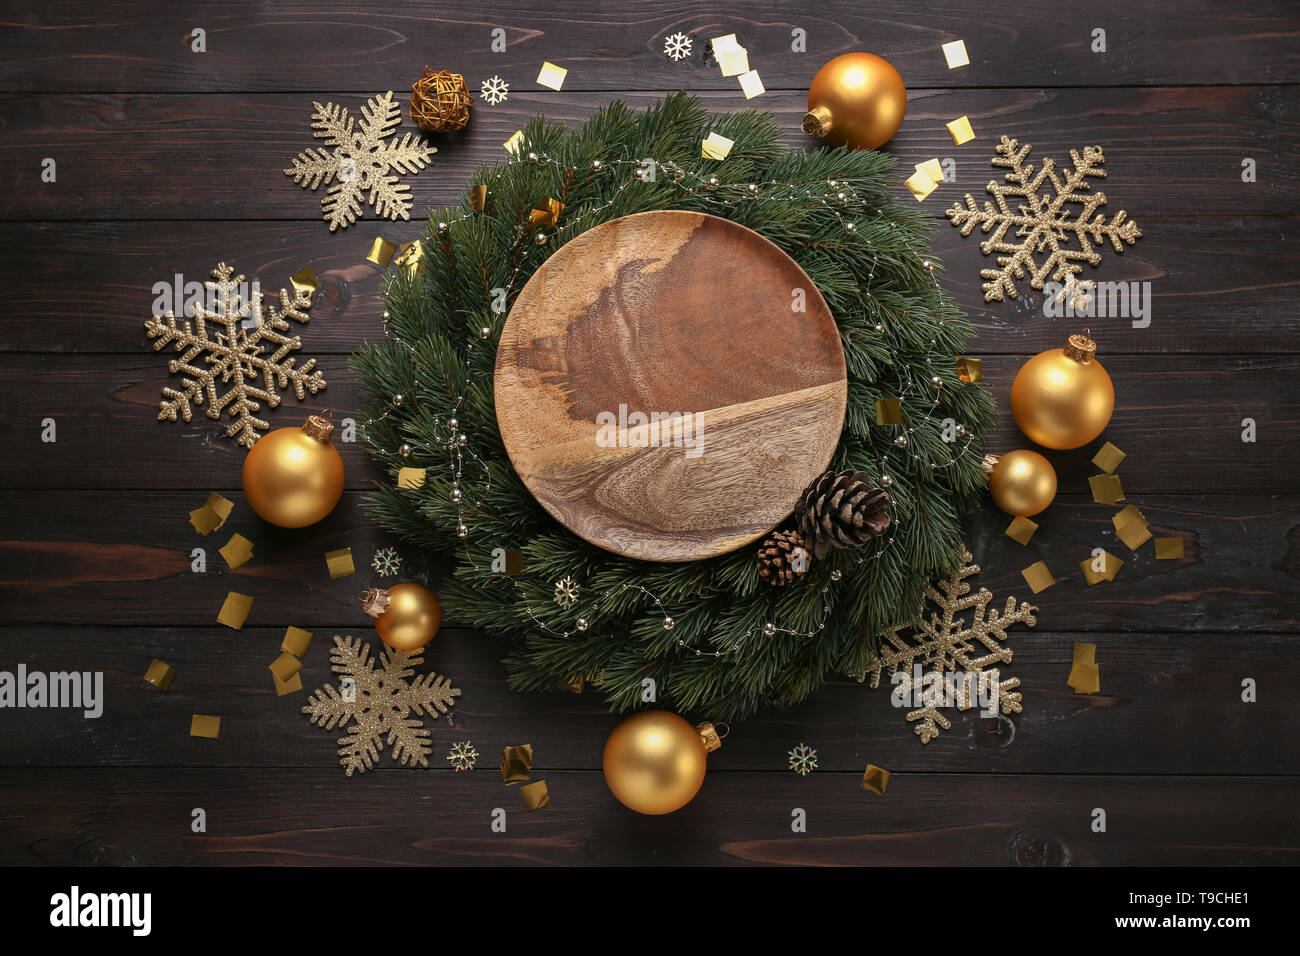 Composition With Beautiful Christmas Decorations And Plate On Wooden Table Stock Photo Alamy